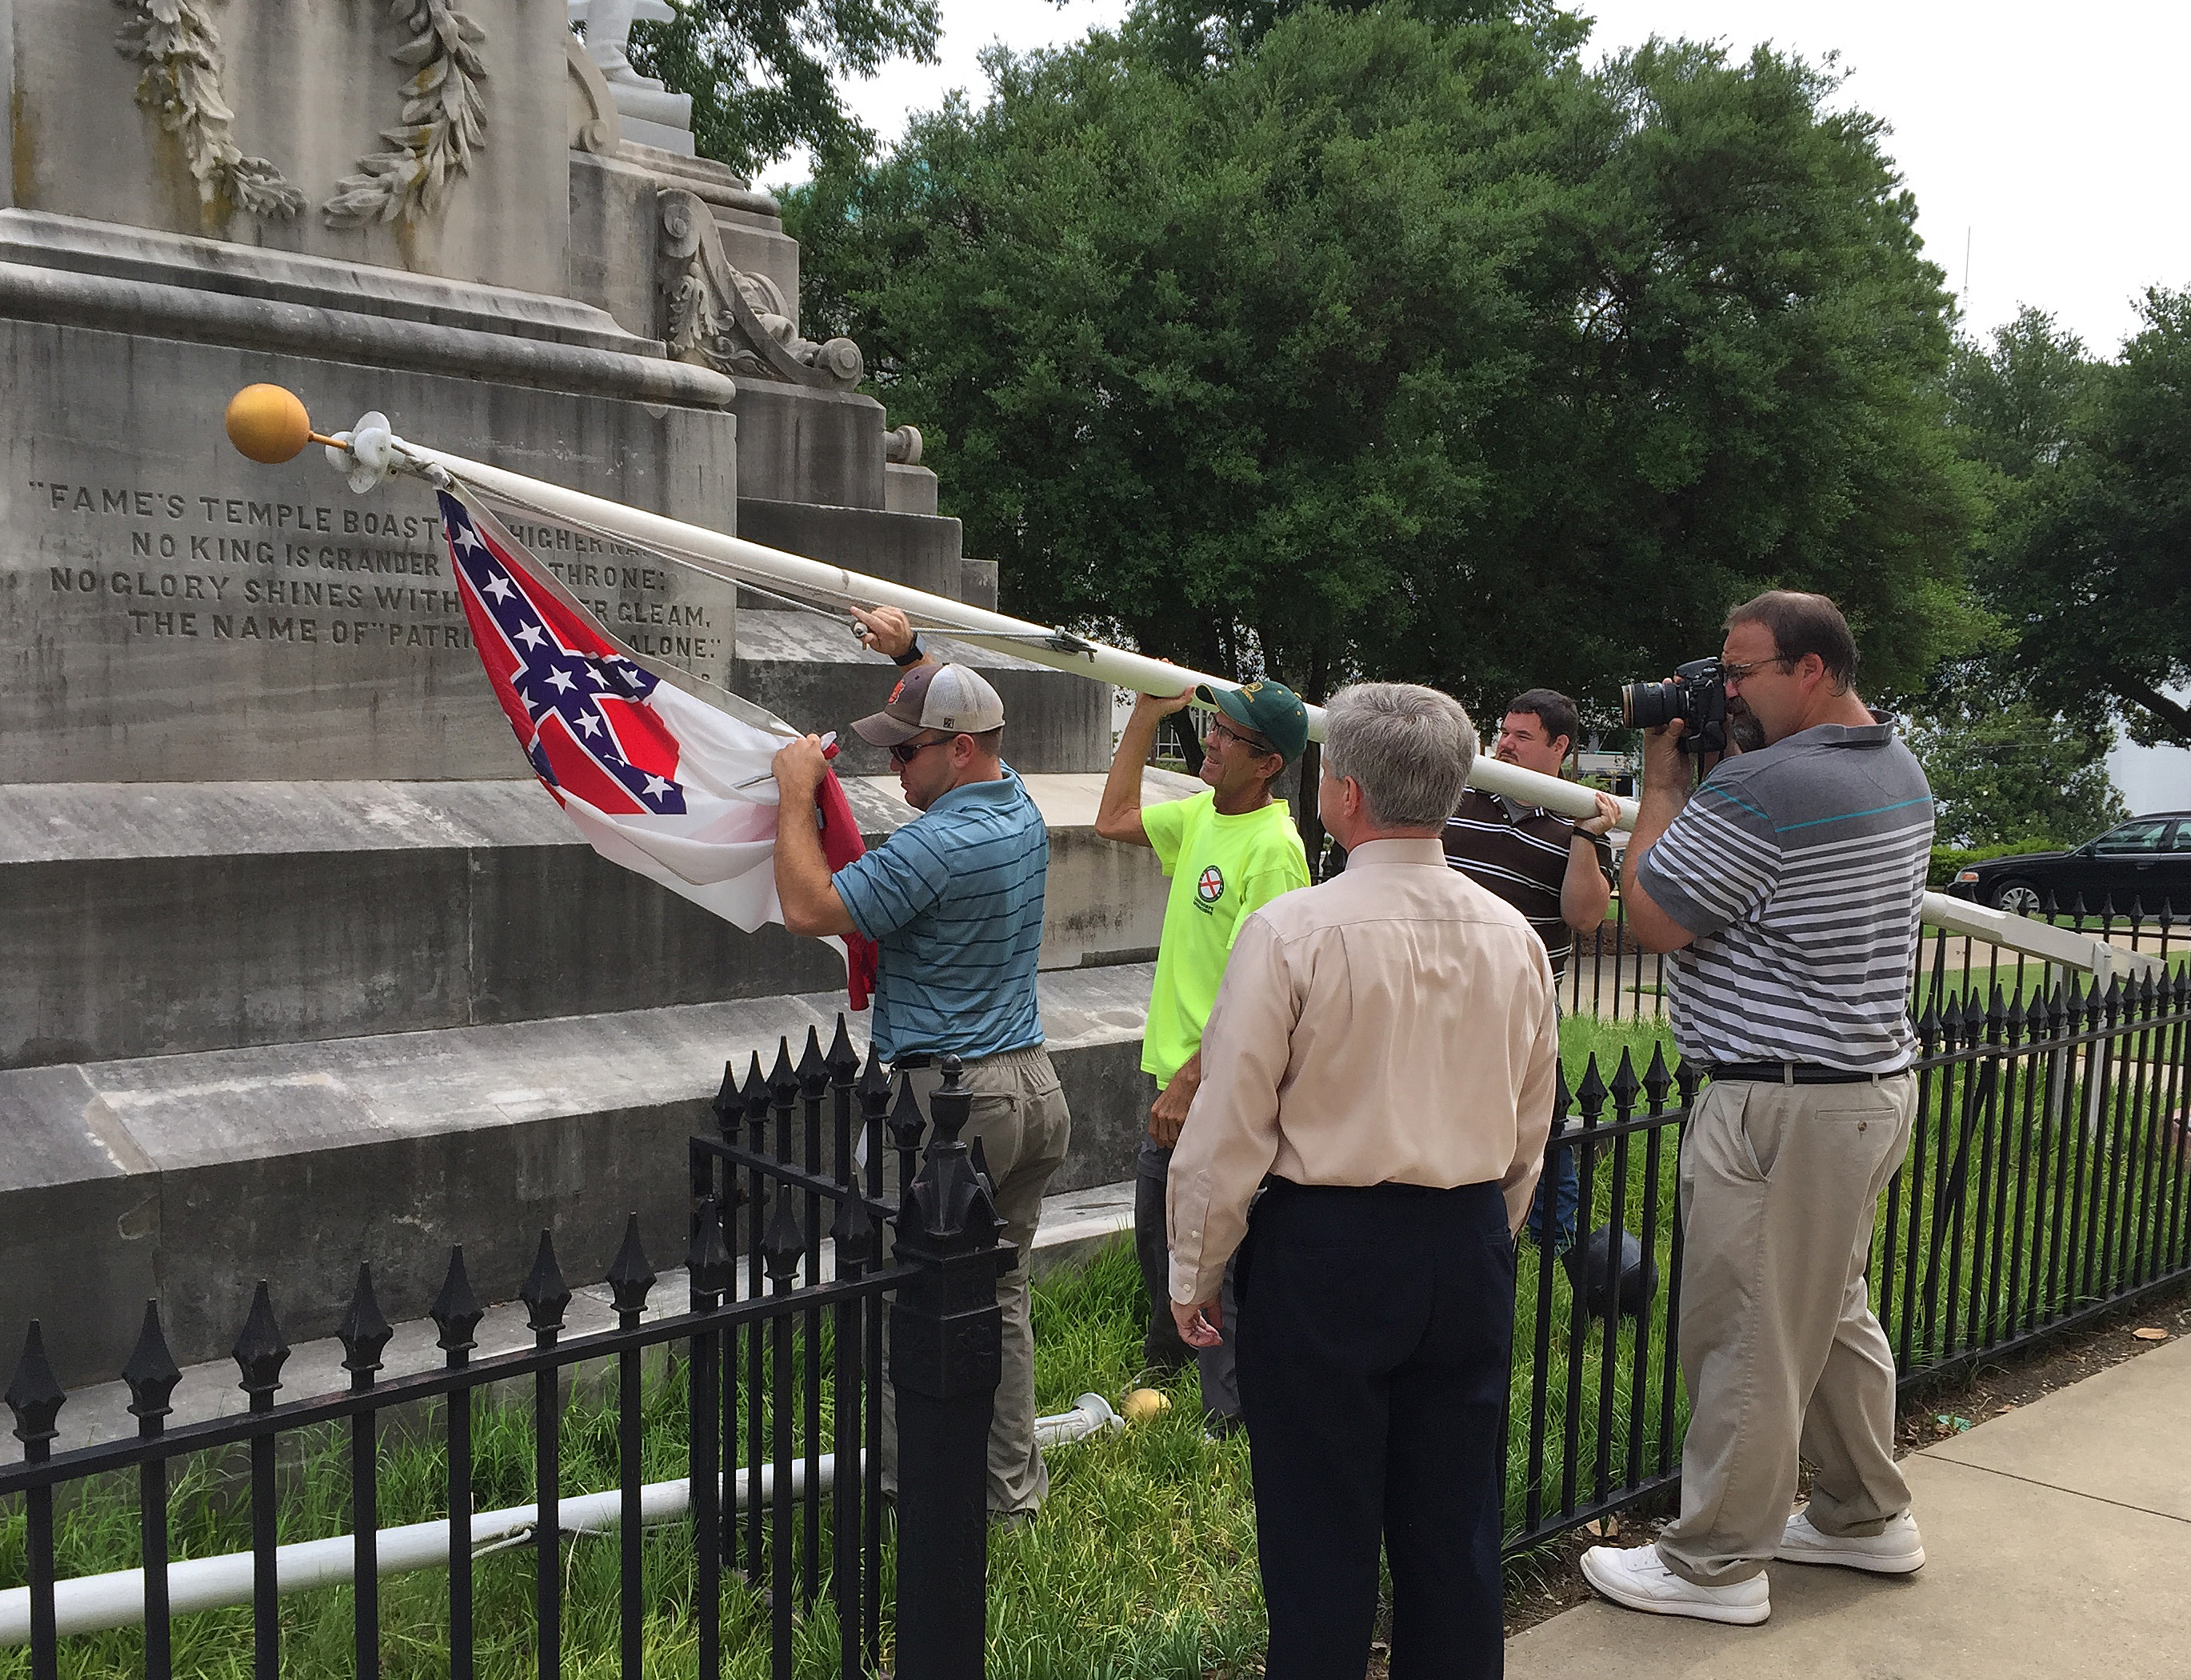 State workers take down a Confederate national flag on the grounds of the state Capitol, June 24, 2015, in Montgomery, Ala.